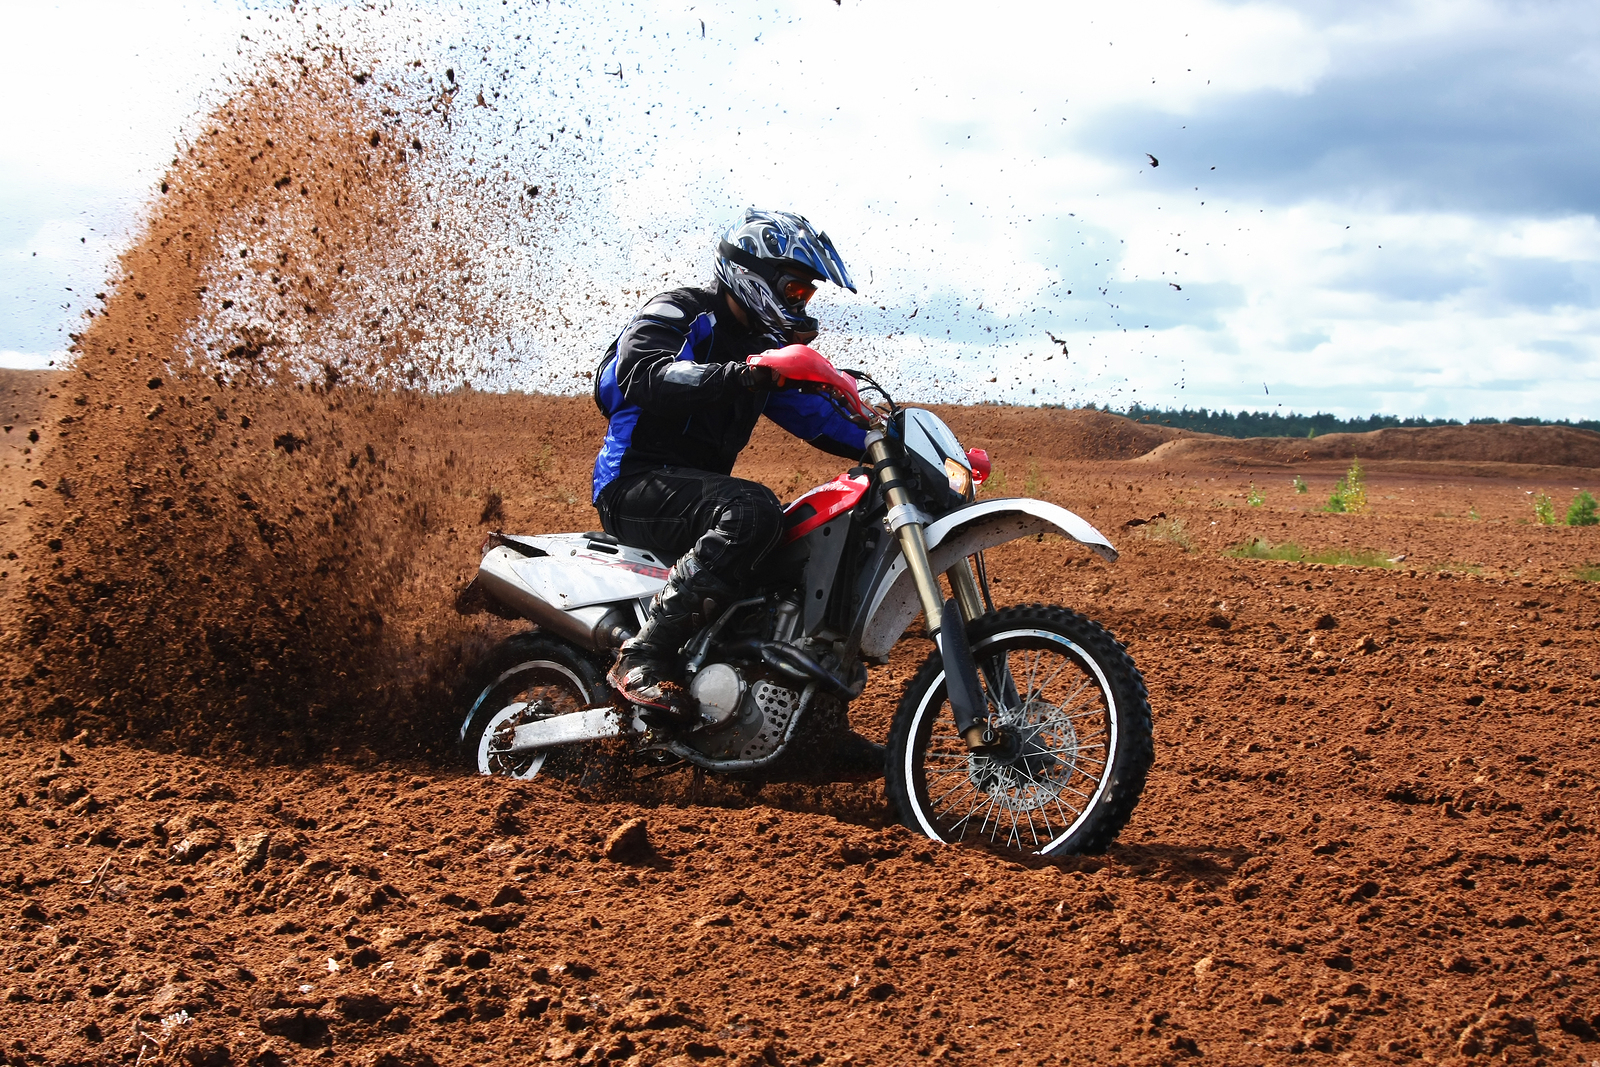 Dirt Bikes 4 You right dirt bike engine for